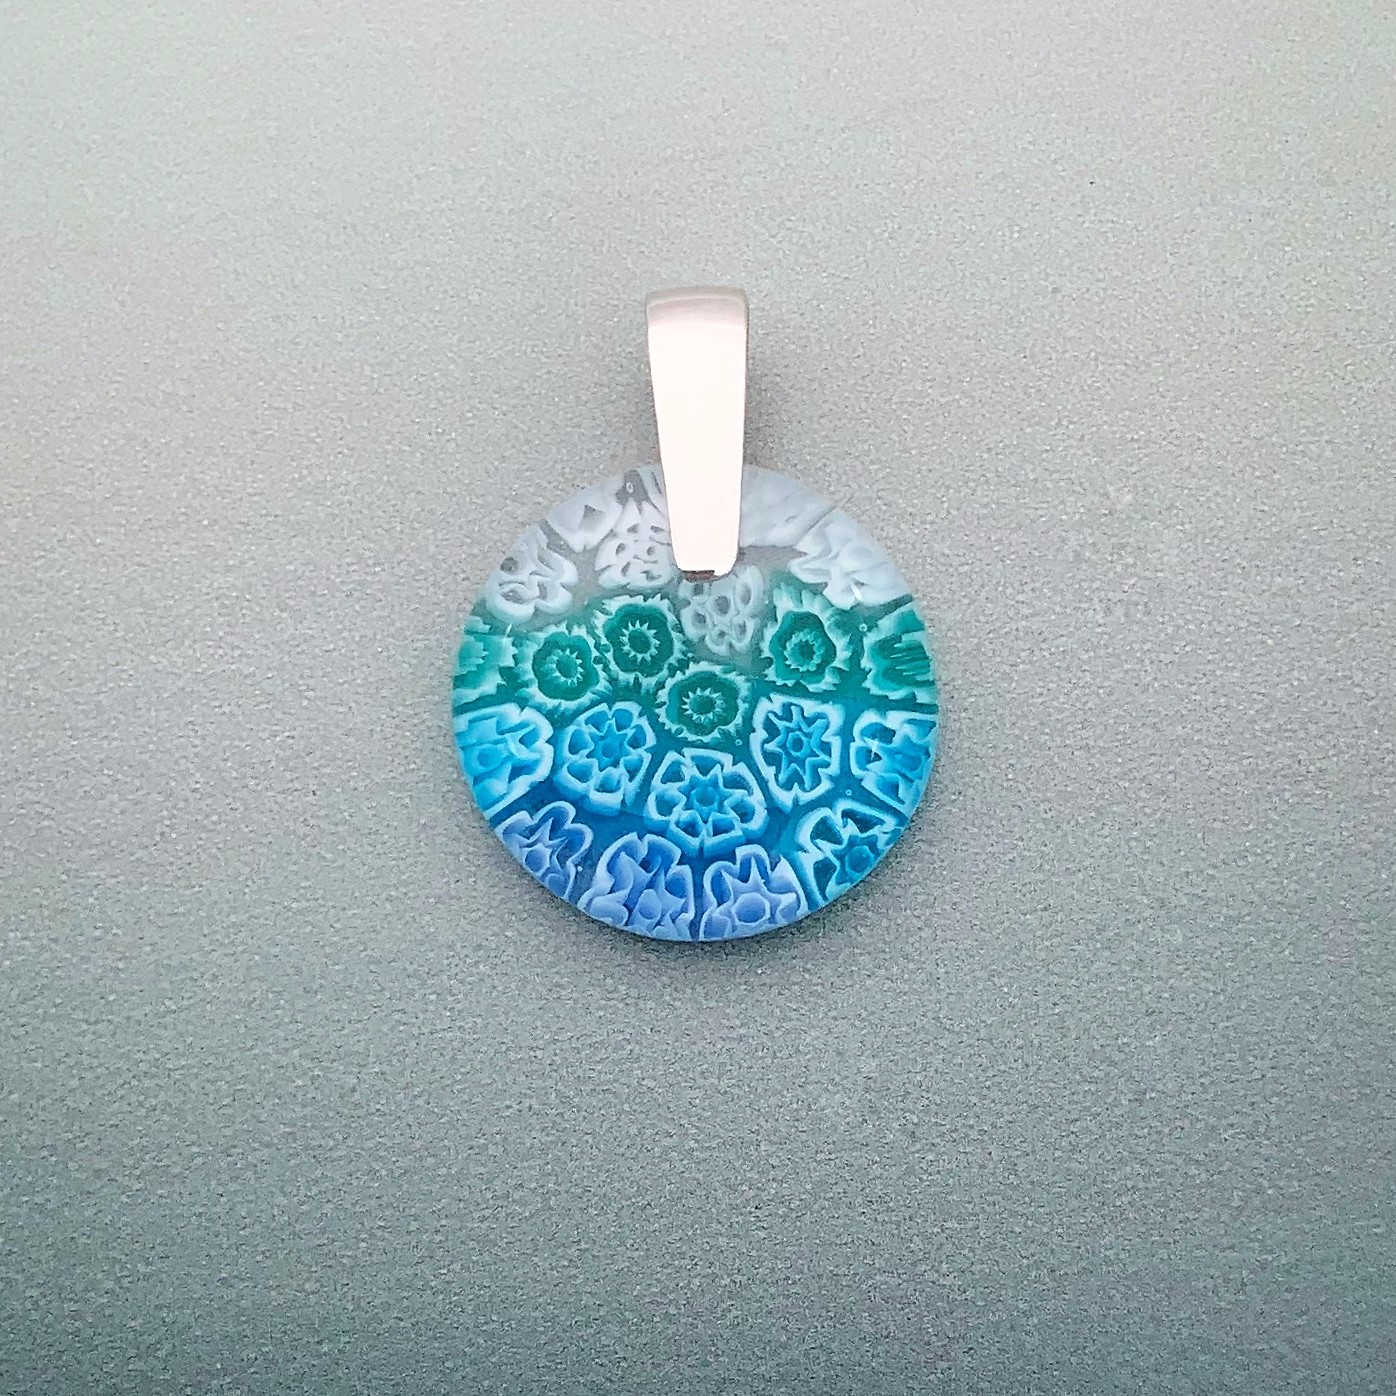 Fused Millefiori glass 24mm round pendant in aqua cascade fleurettes